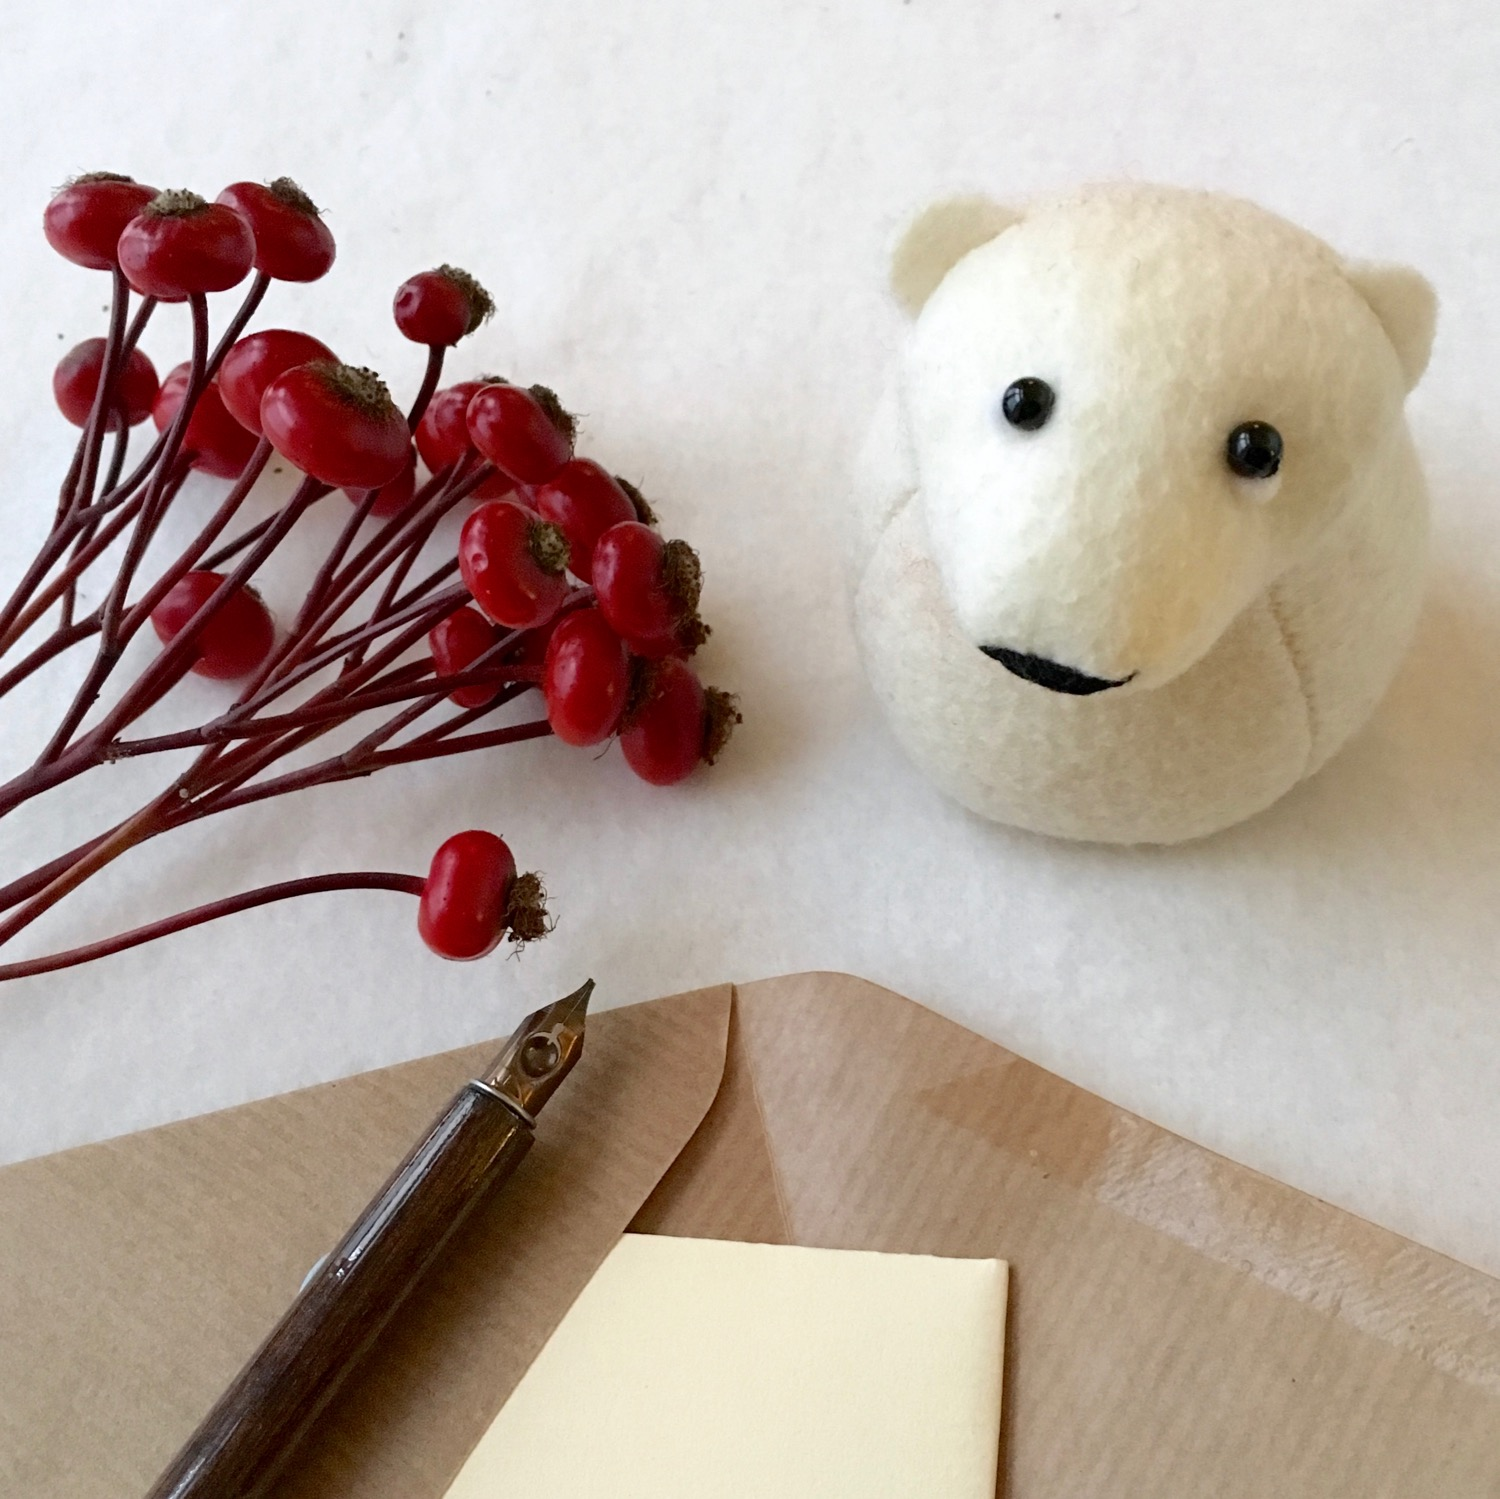 Onni the Polar Bear paperweight | an ideal writing companion | handmade from Kunin eco felt | by Bilberry Woods.jpg